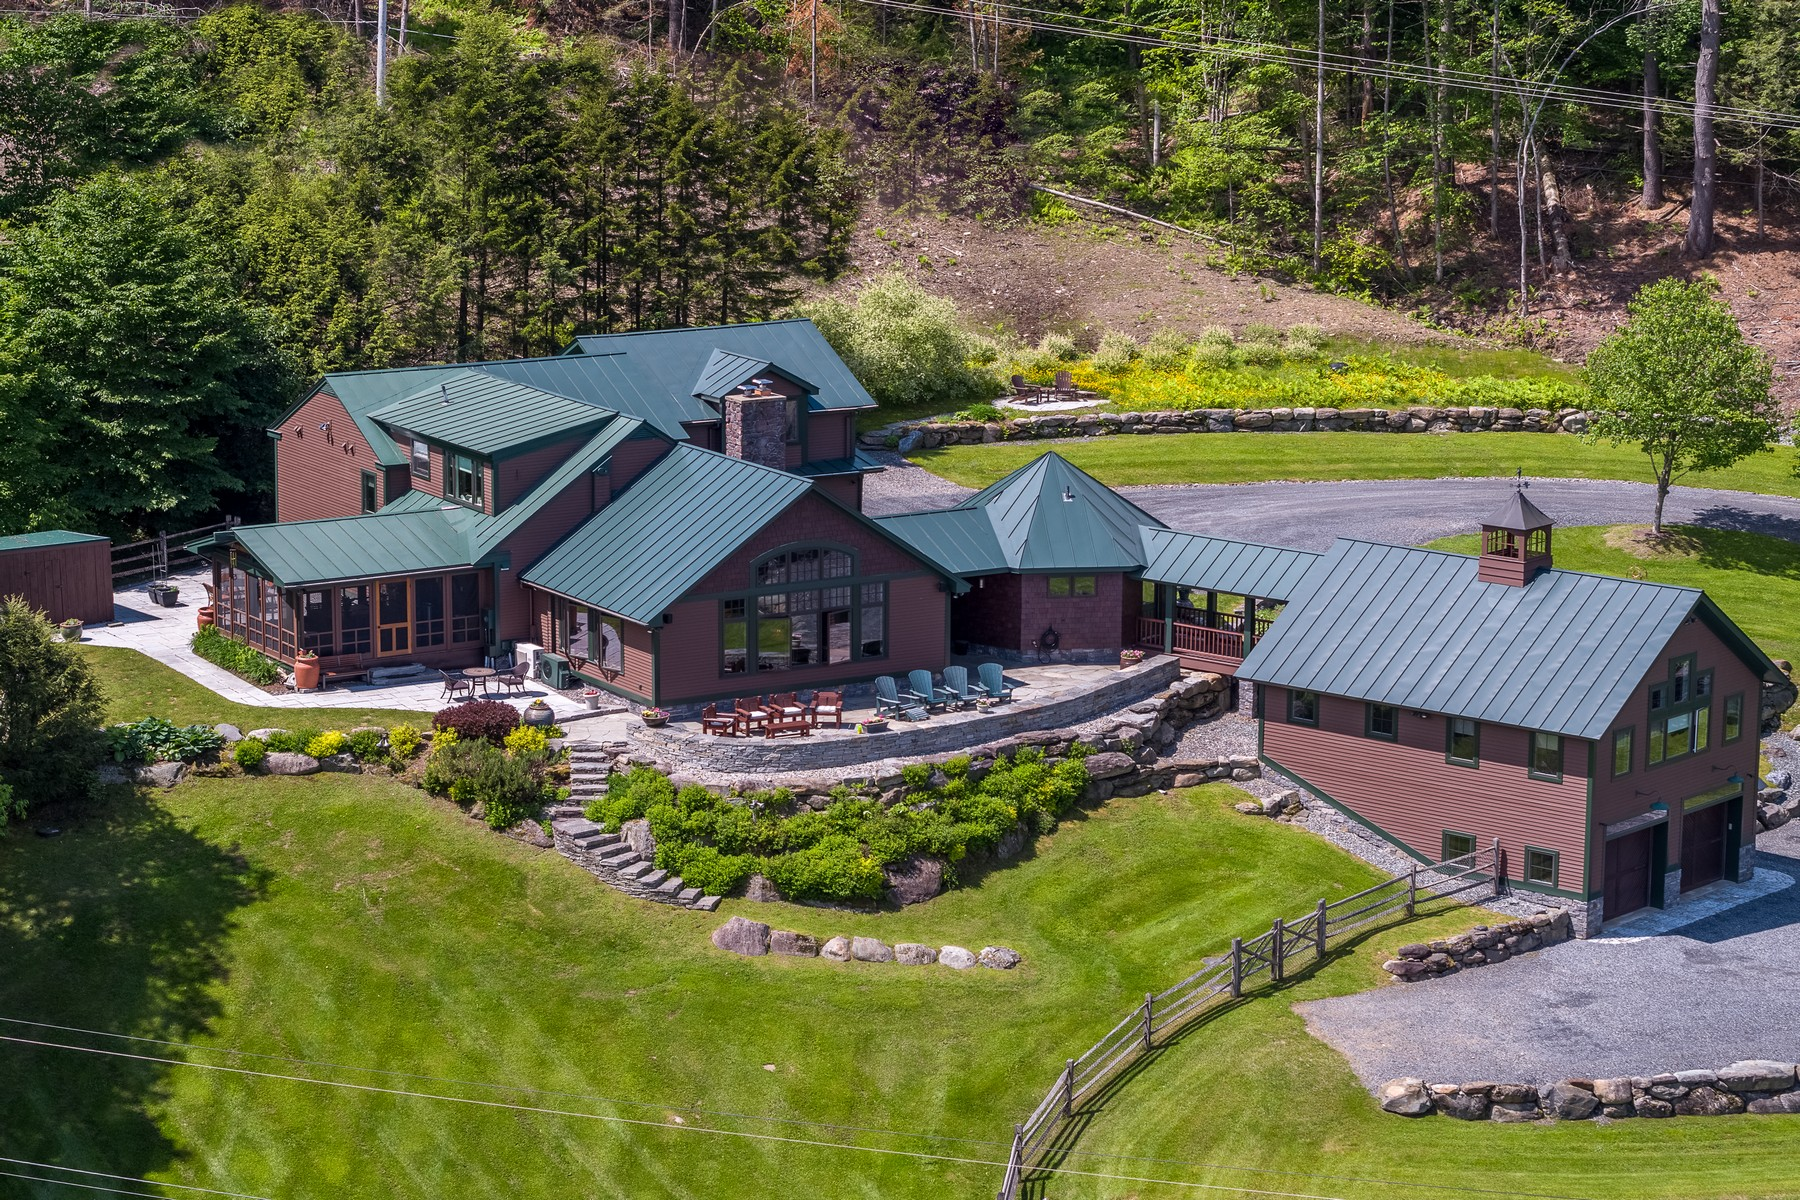 single family homes for Sale at 473 Bouchard Road, Stowe 473 Bouchard Rd Stowe, Vermont 05672 United States